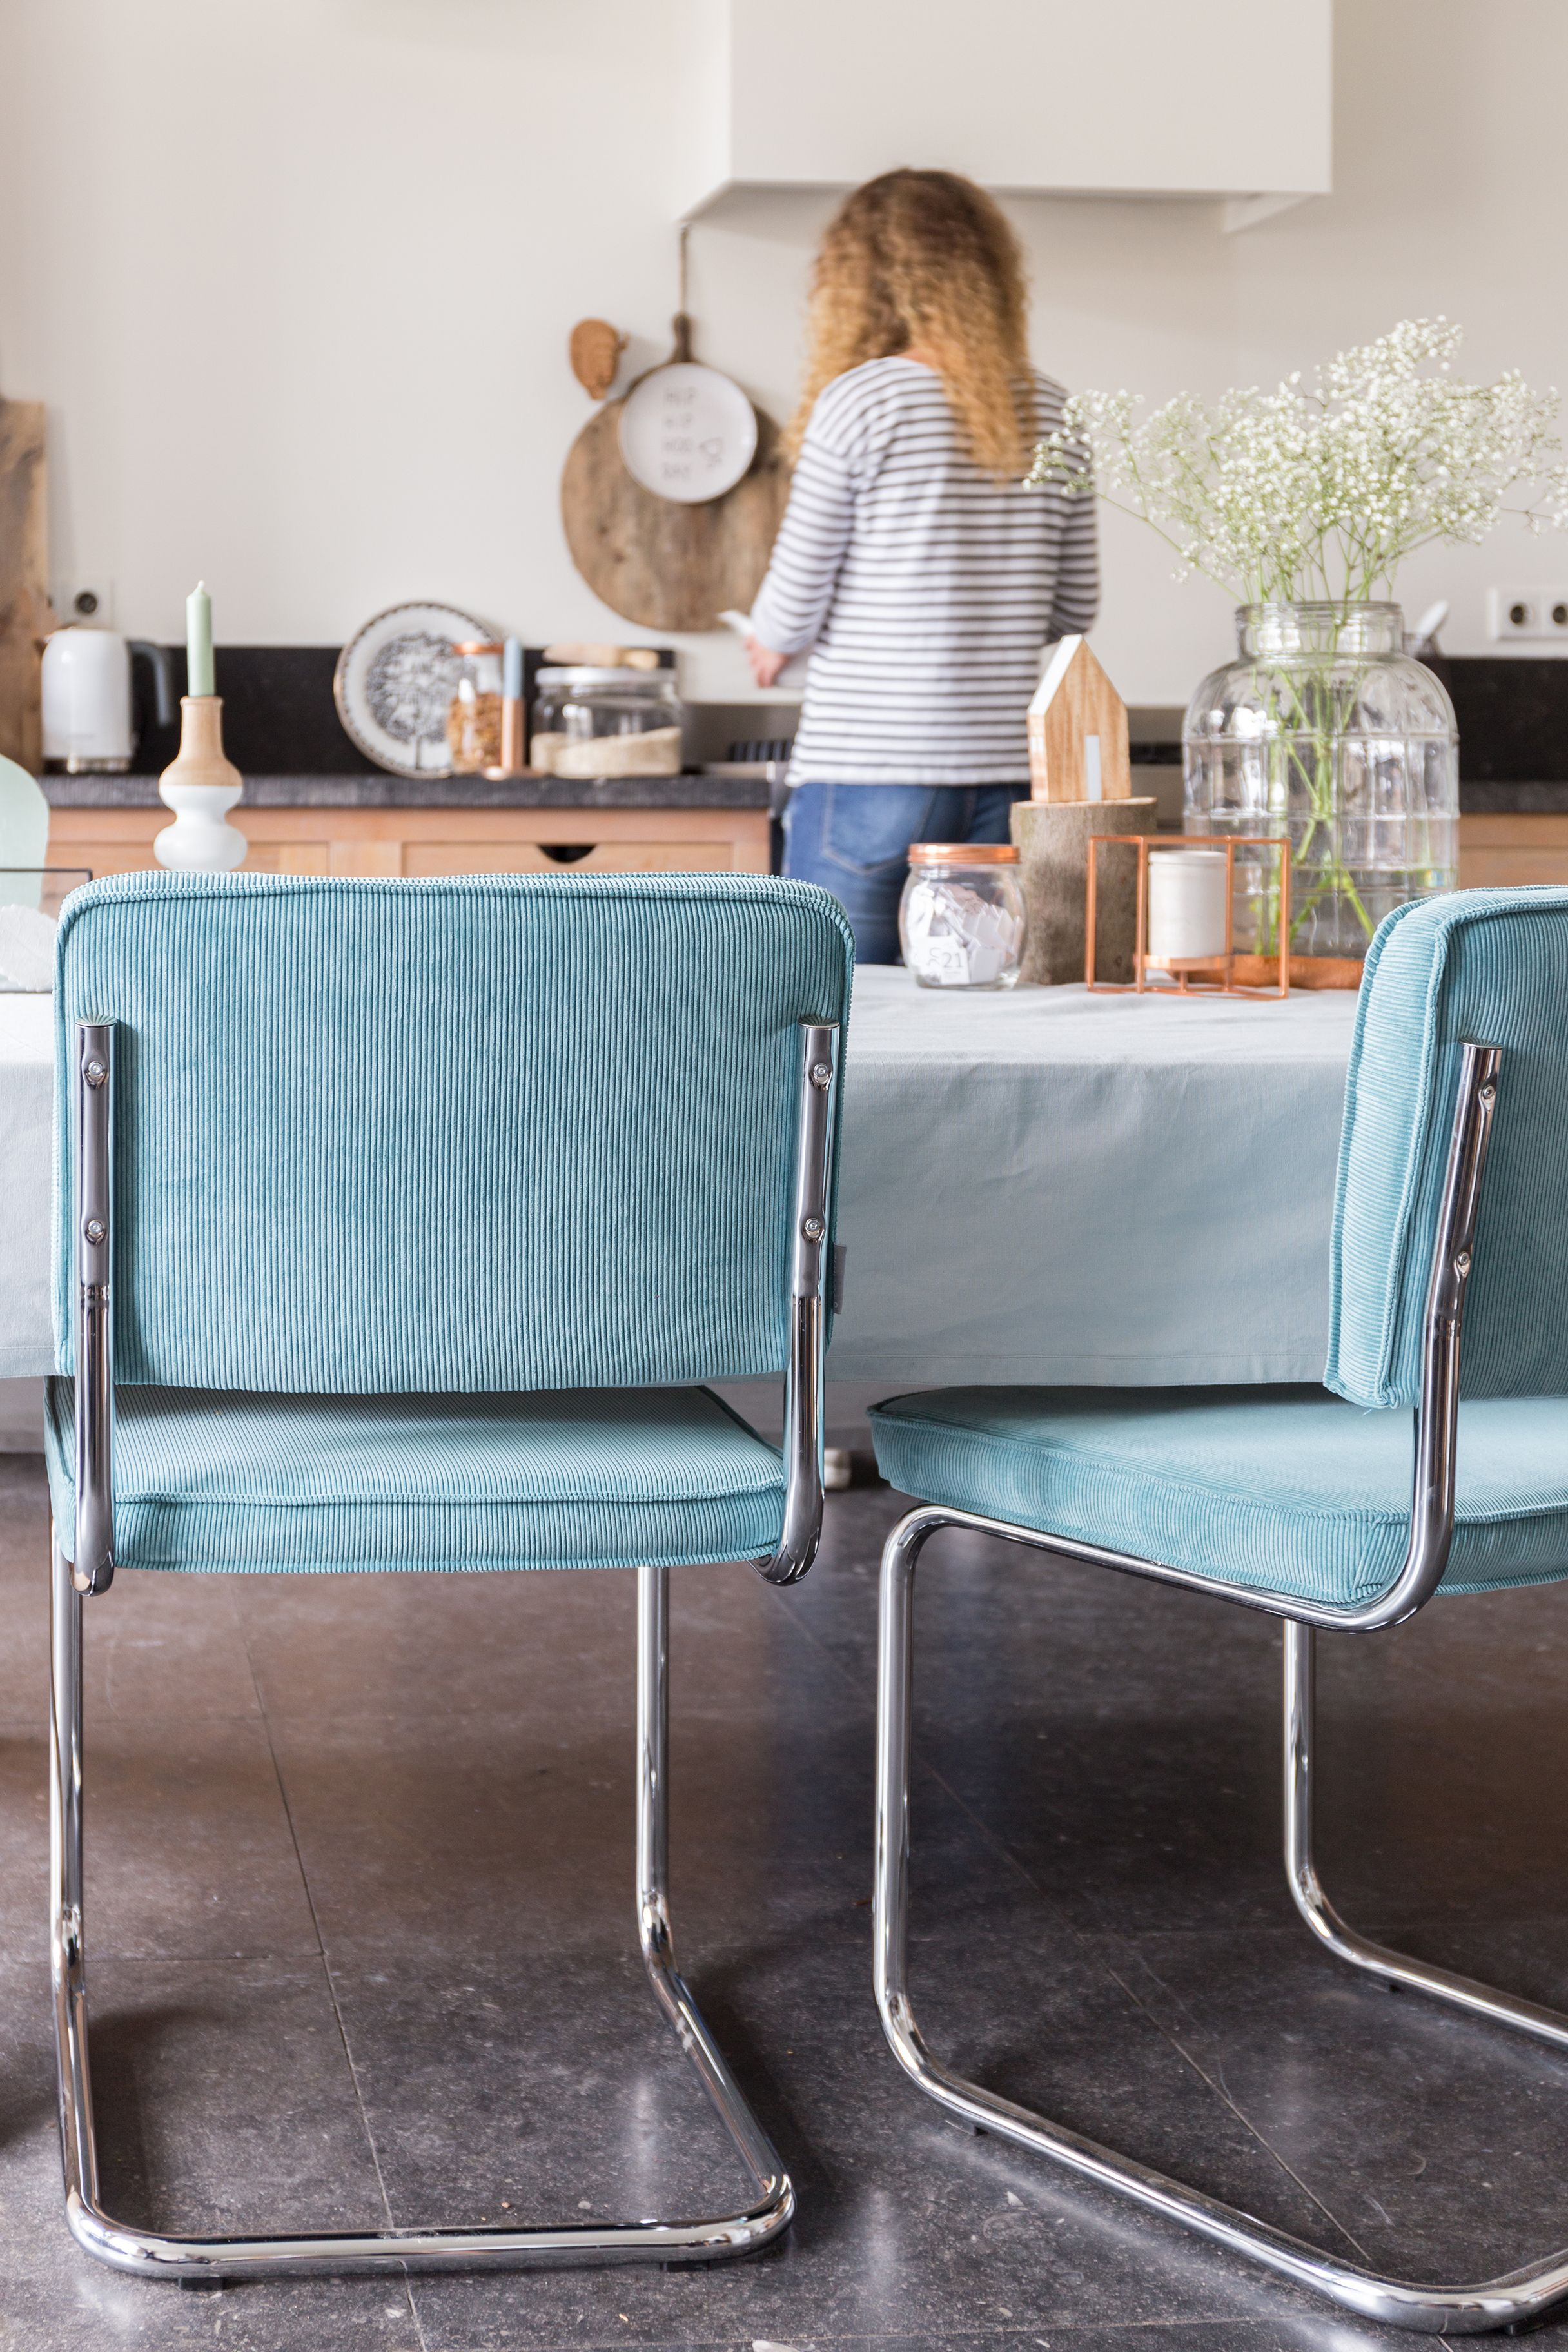 Ridge rib chair | RAG | Pinterest | Dining, Kitchen dining and Interiors